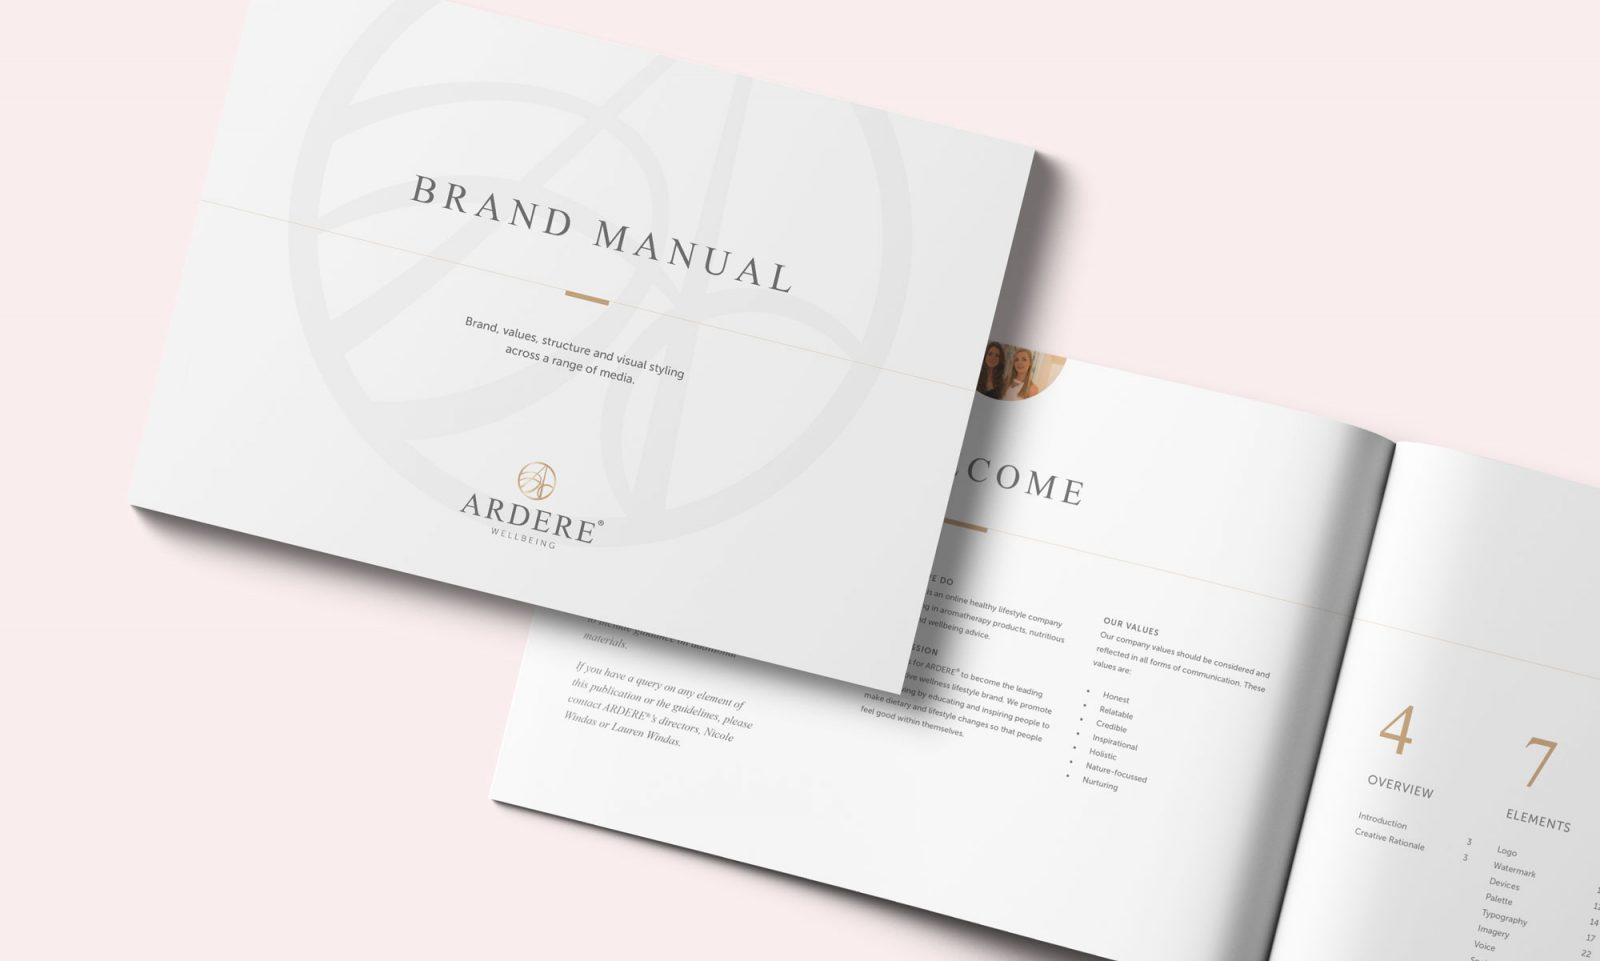 Ardere brand manual